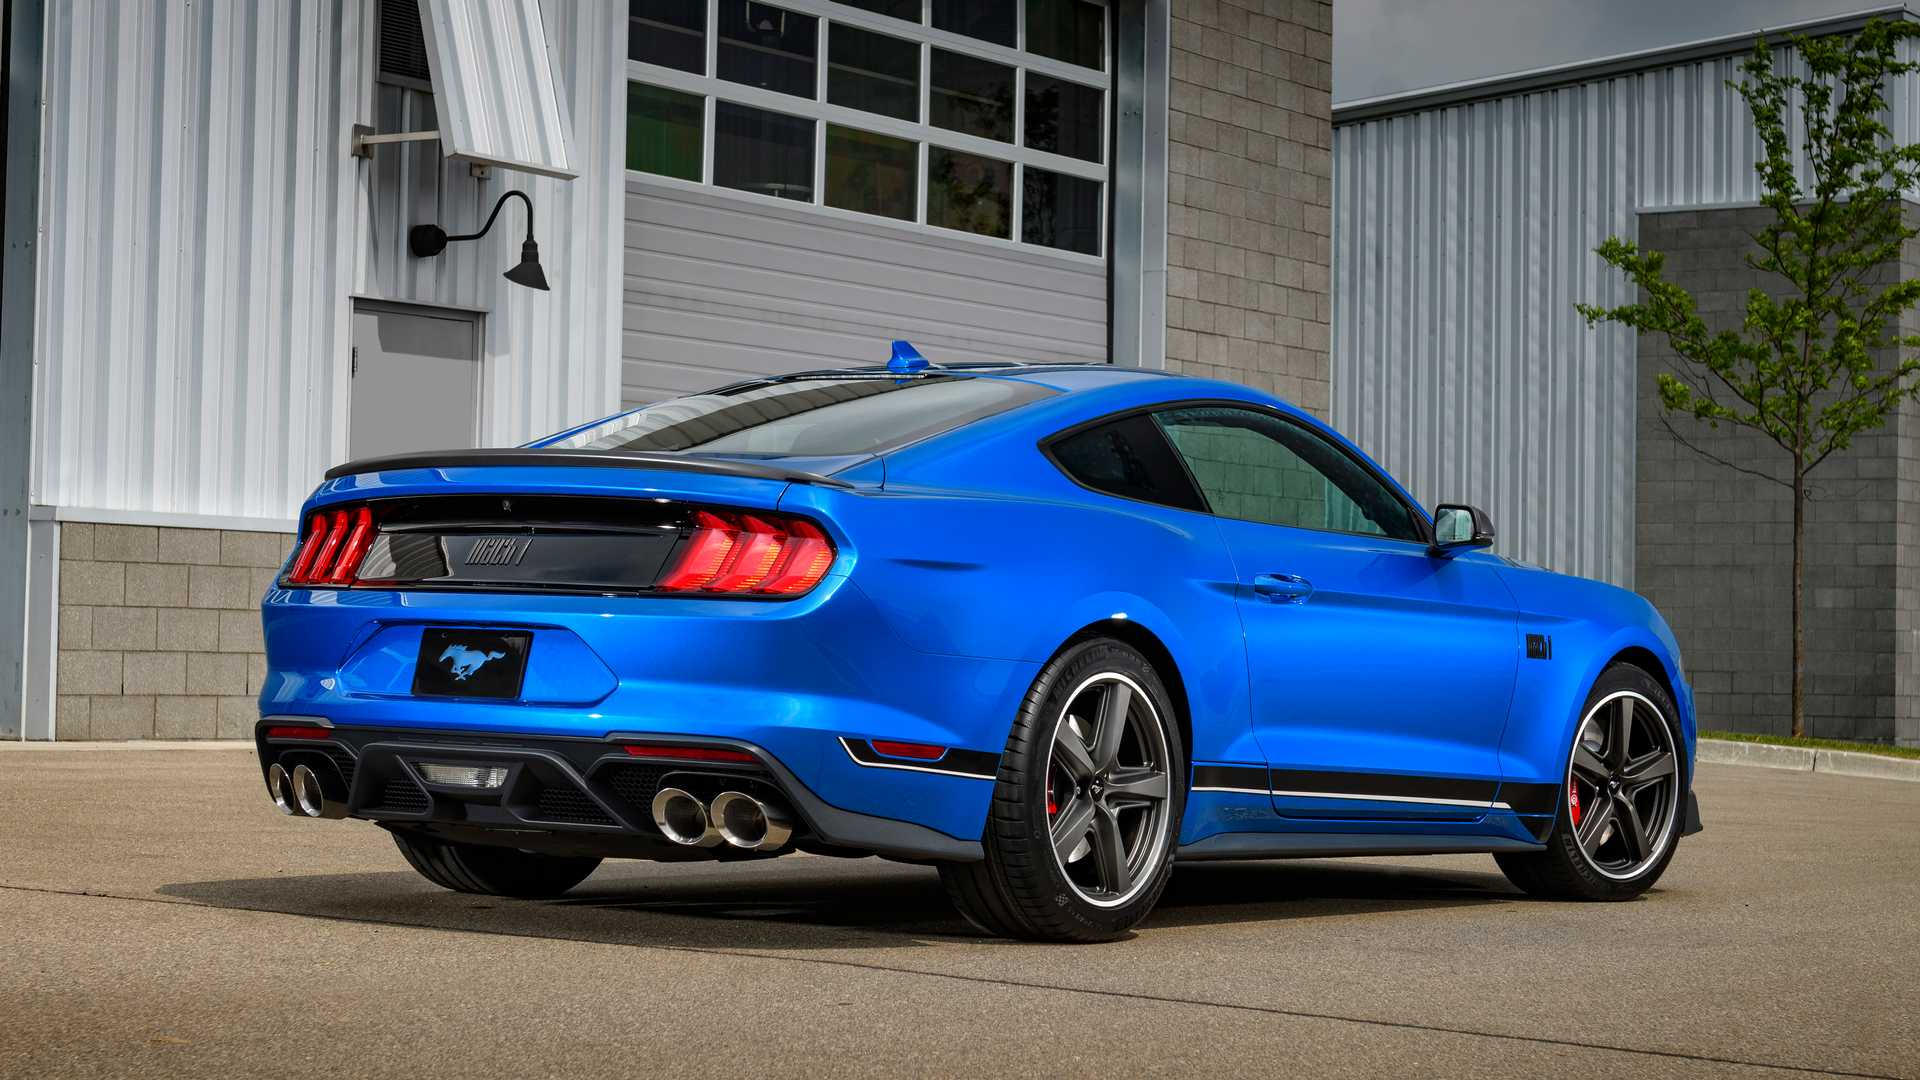 2021 Ford Mustang Gt500 Review and Release date